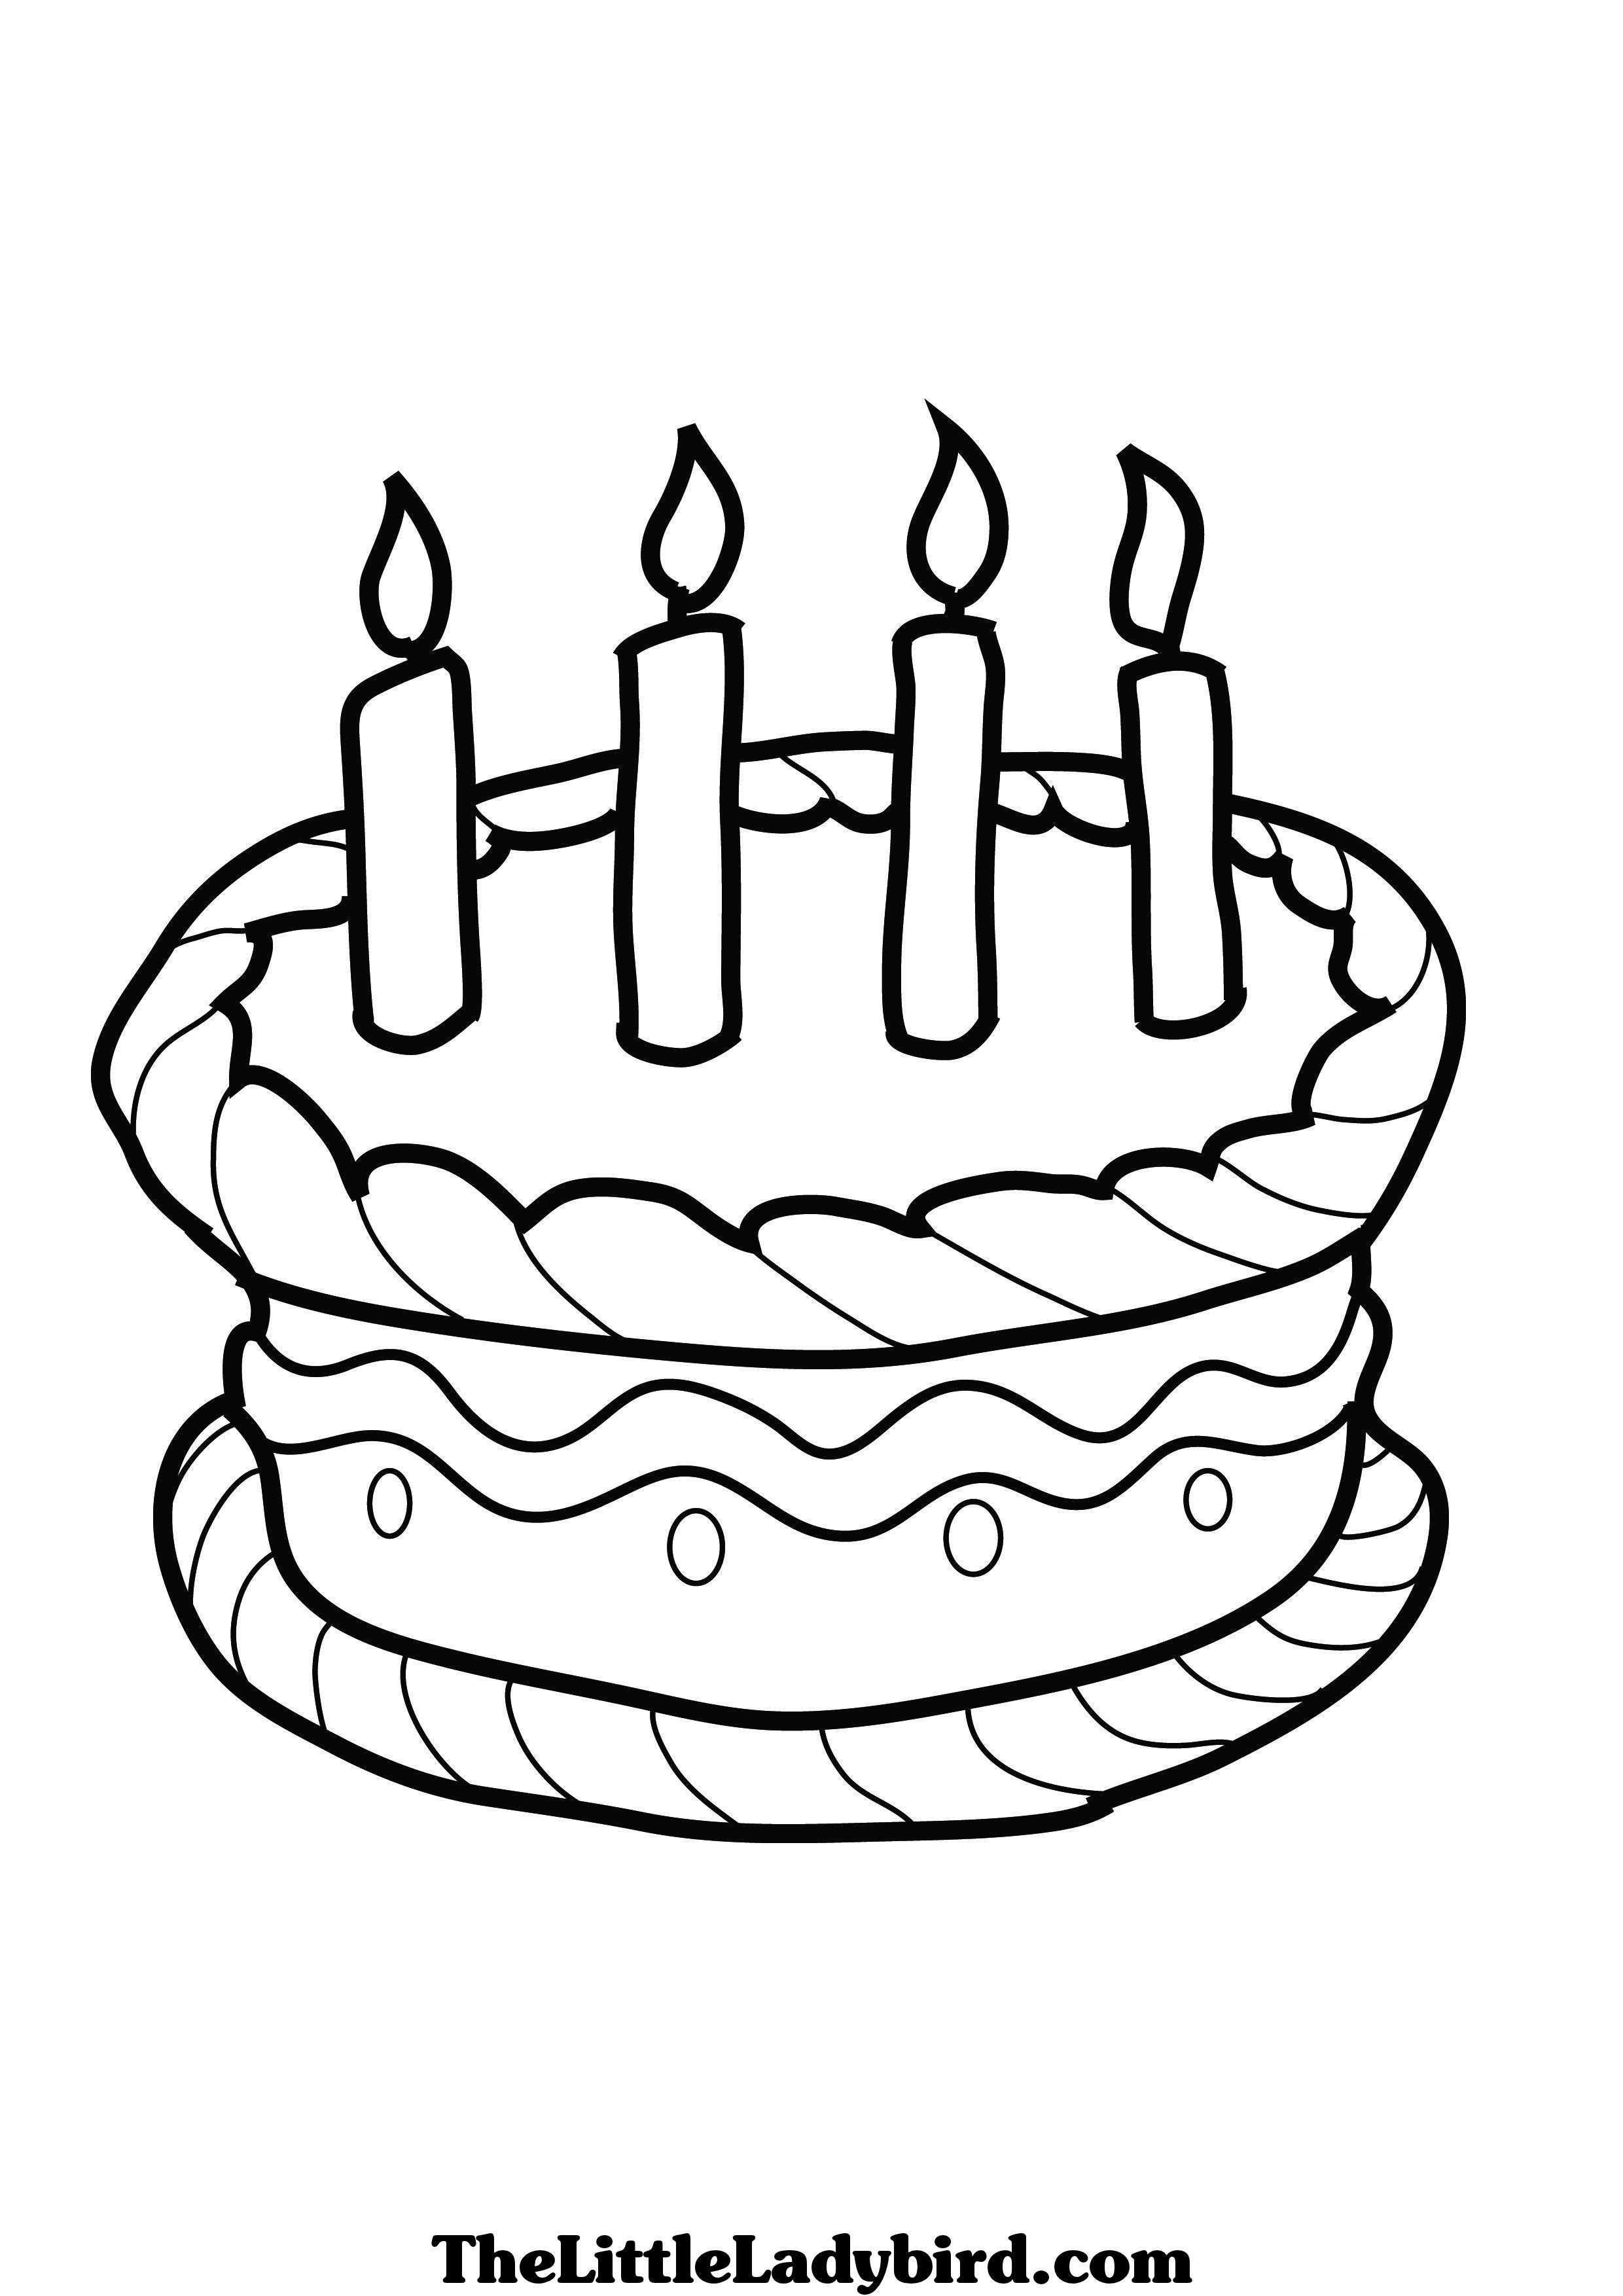 Birthday Cake Coloring Pages To Download And Print For Free Coloring Pages